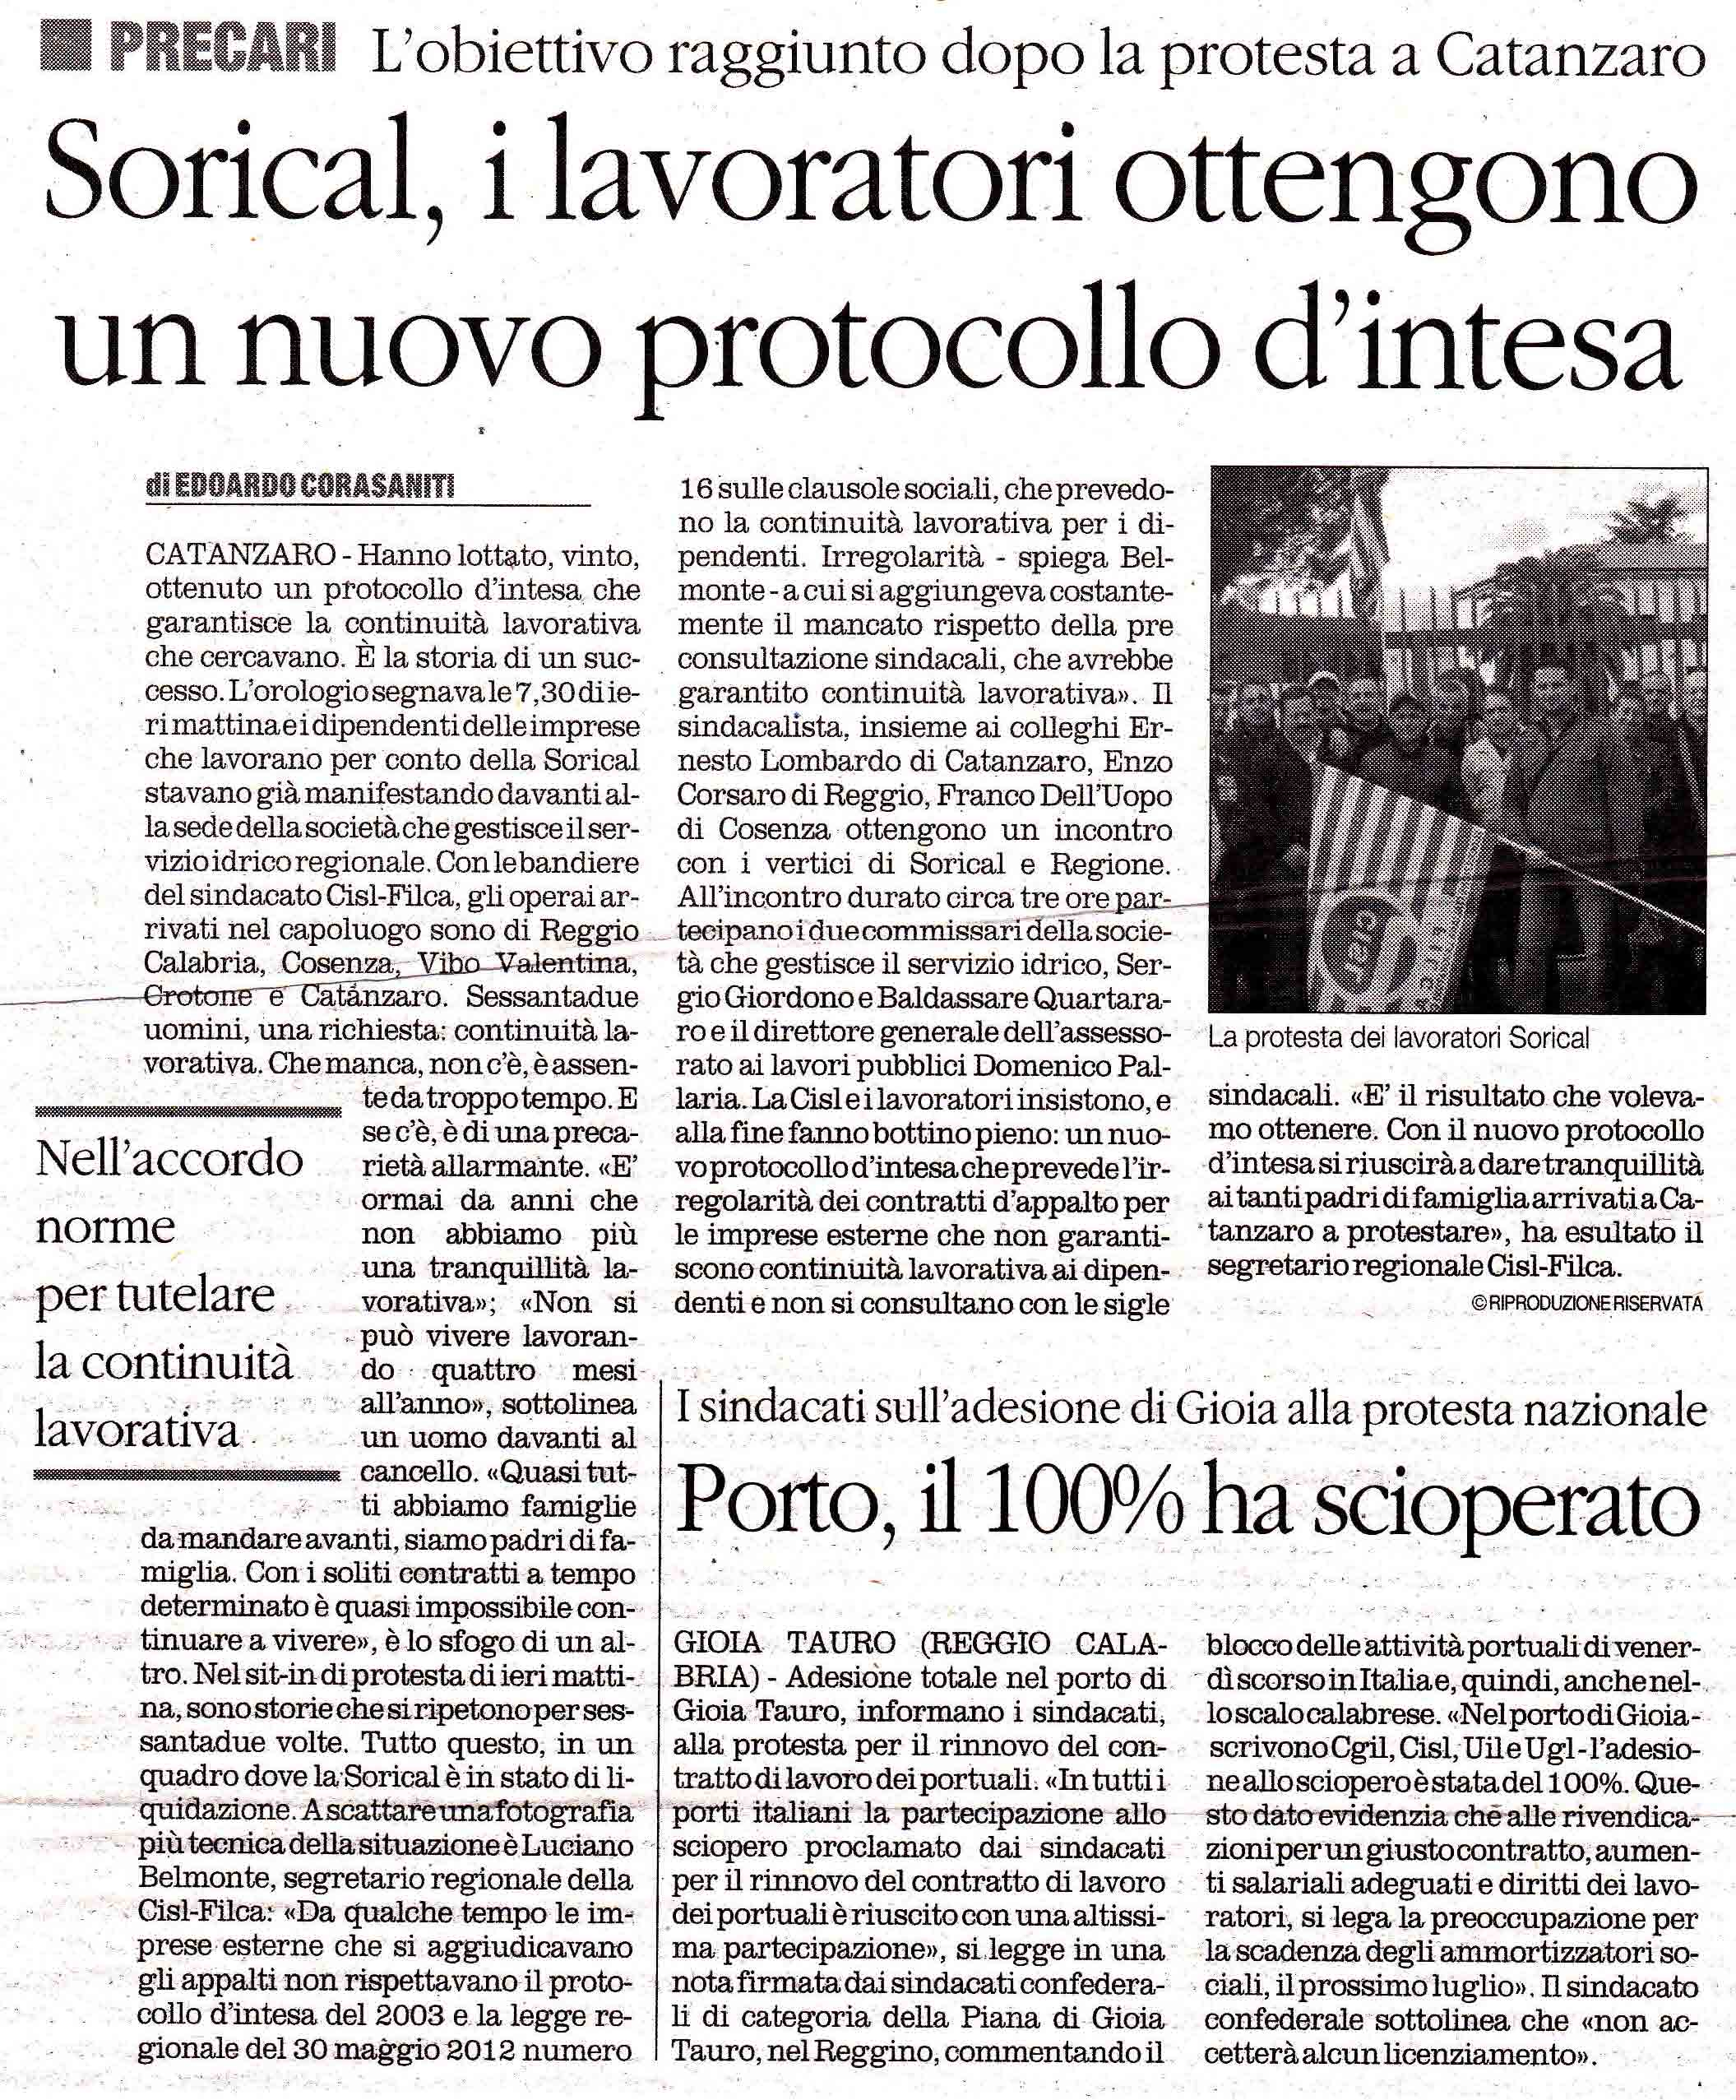 Il Quotidiano 15.11.2013